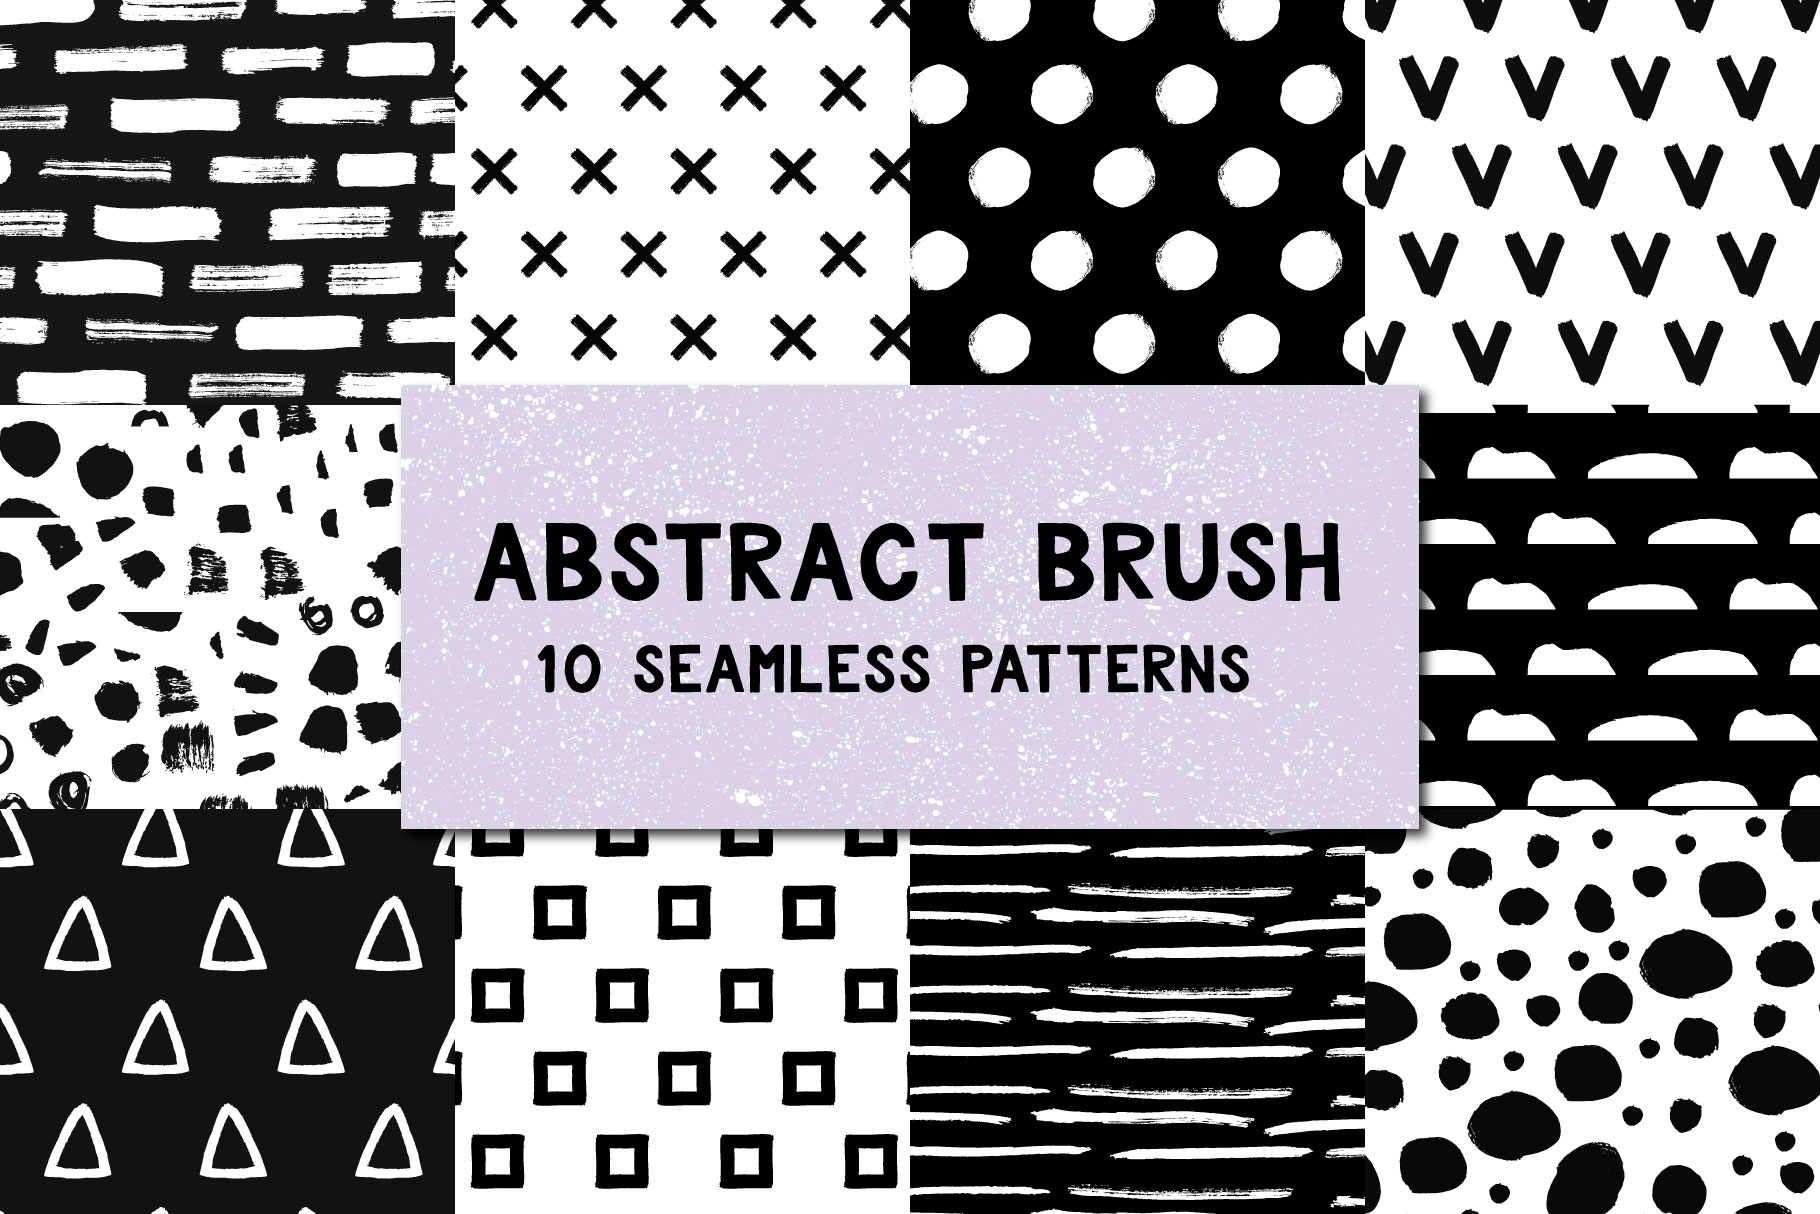 Download Free Abstract Brush Patterns Graphic By Anatartan Creative Fabrica for Cricut Explore, Silhouette and other cutting machines.